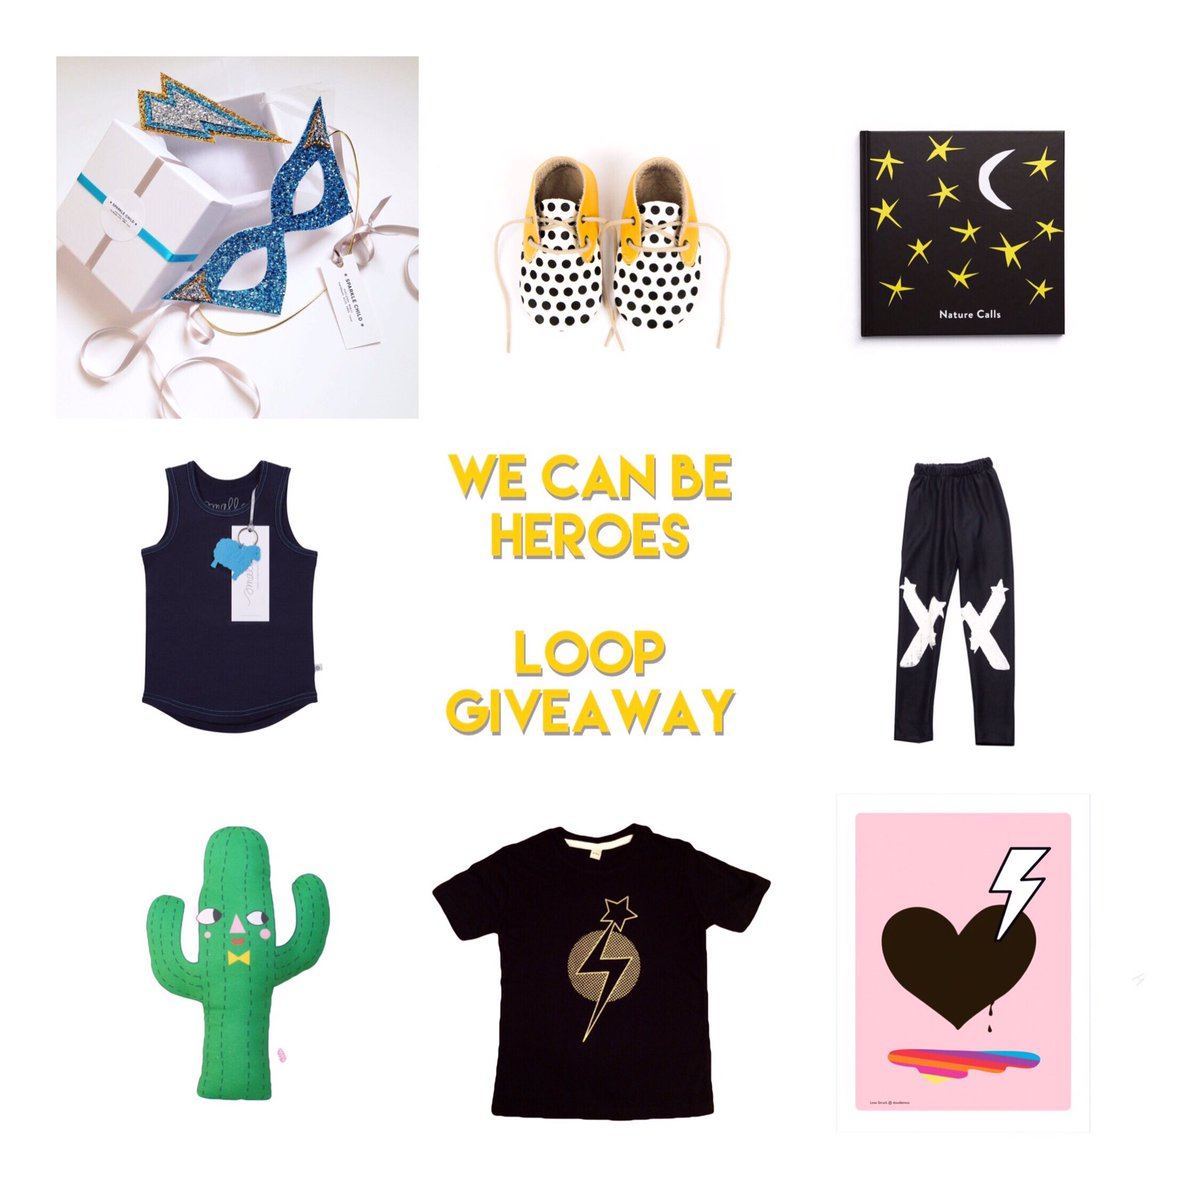 We&#39;ve teamed up with @RunawayDC for an amazing #giveaway head over to our instagram for details! #wecanbeheros #loopgiveaway<br>http://pic.twitter.com/ygaiHKTfll